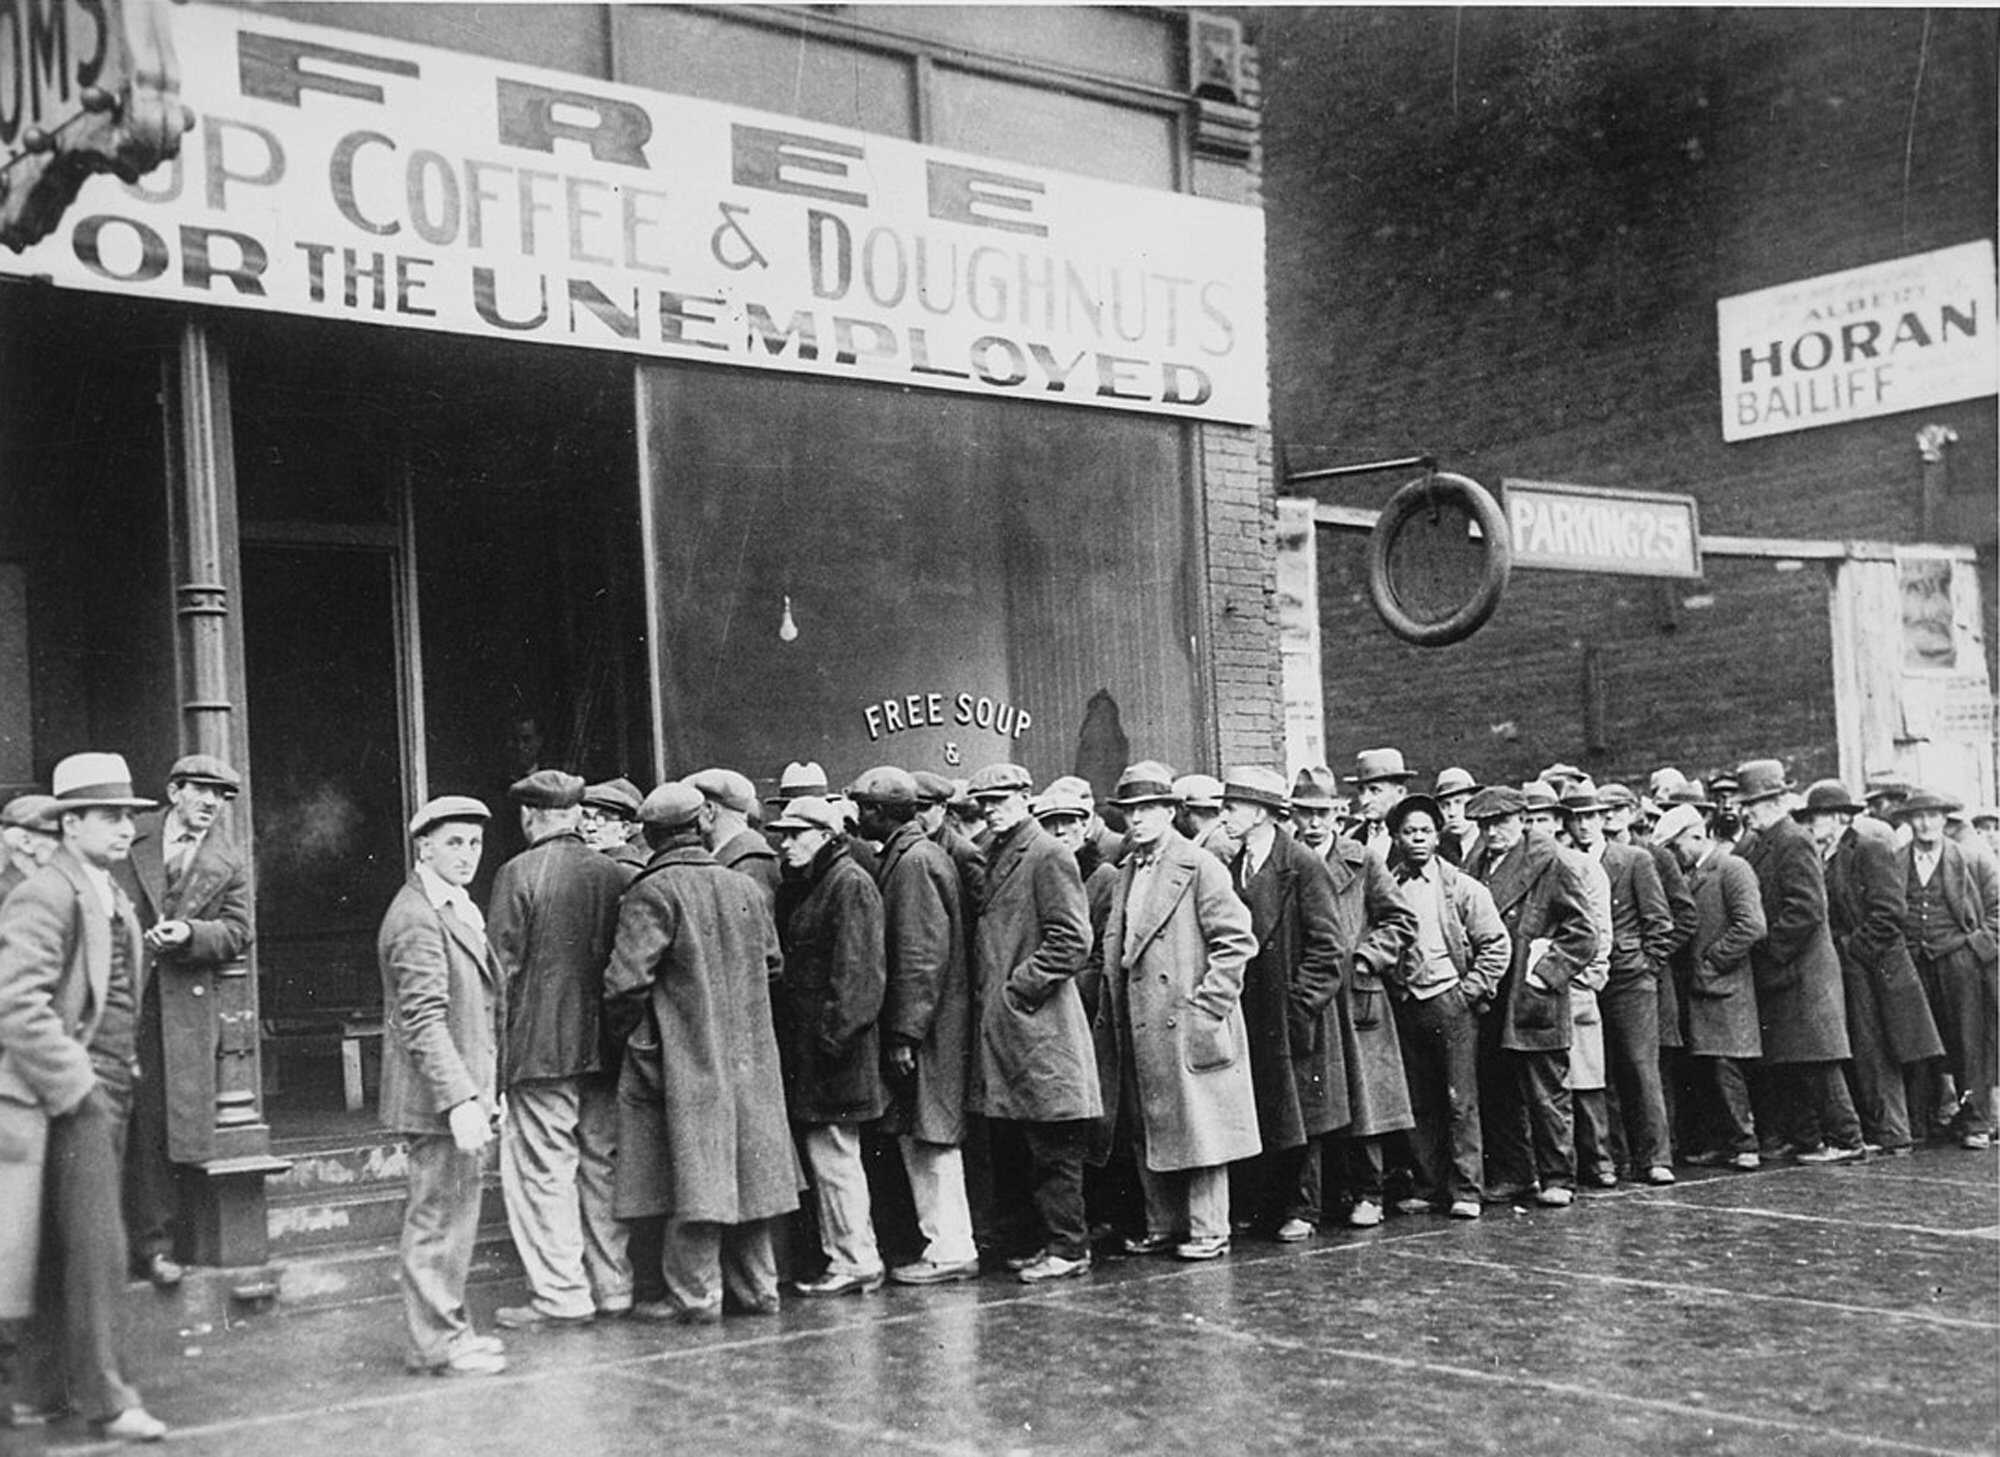 Dustbowl_Unemployed_men_queued_outside_a_depression_soup_kitchen_1931_-_NARA.jpg